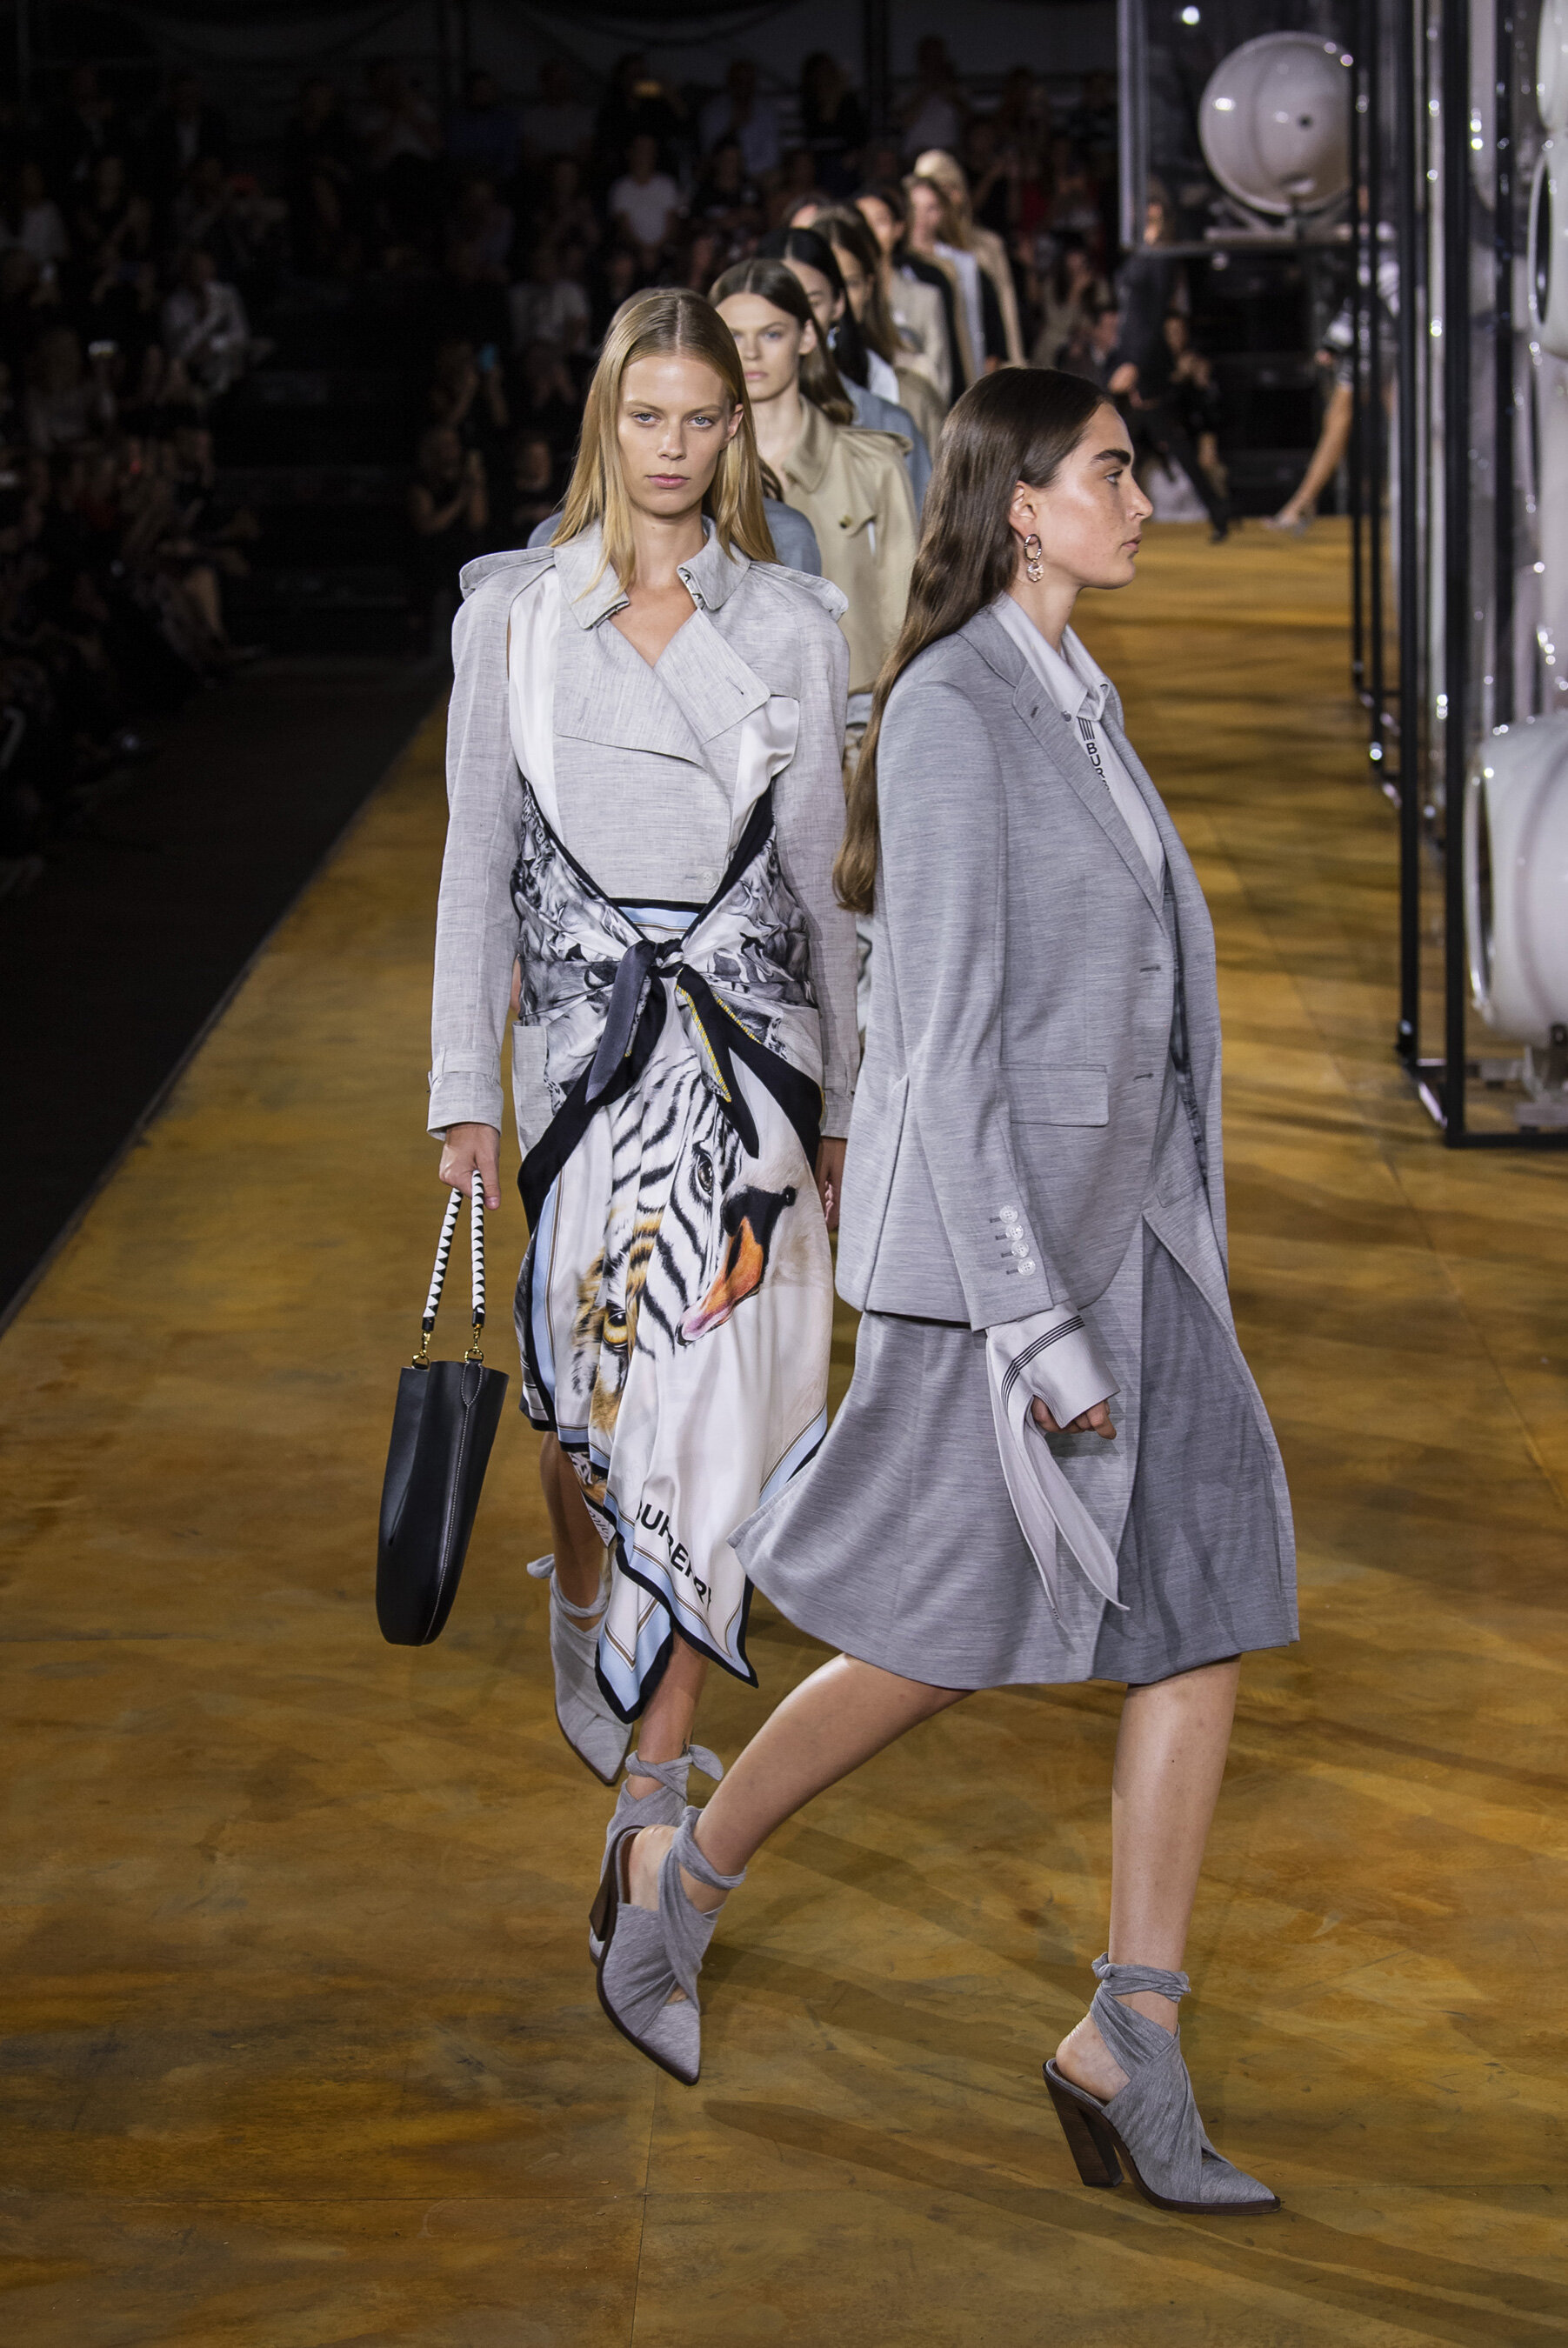 Burberry SS20 by Riccardo Tisci as part of London Fashion Week.